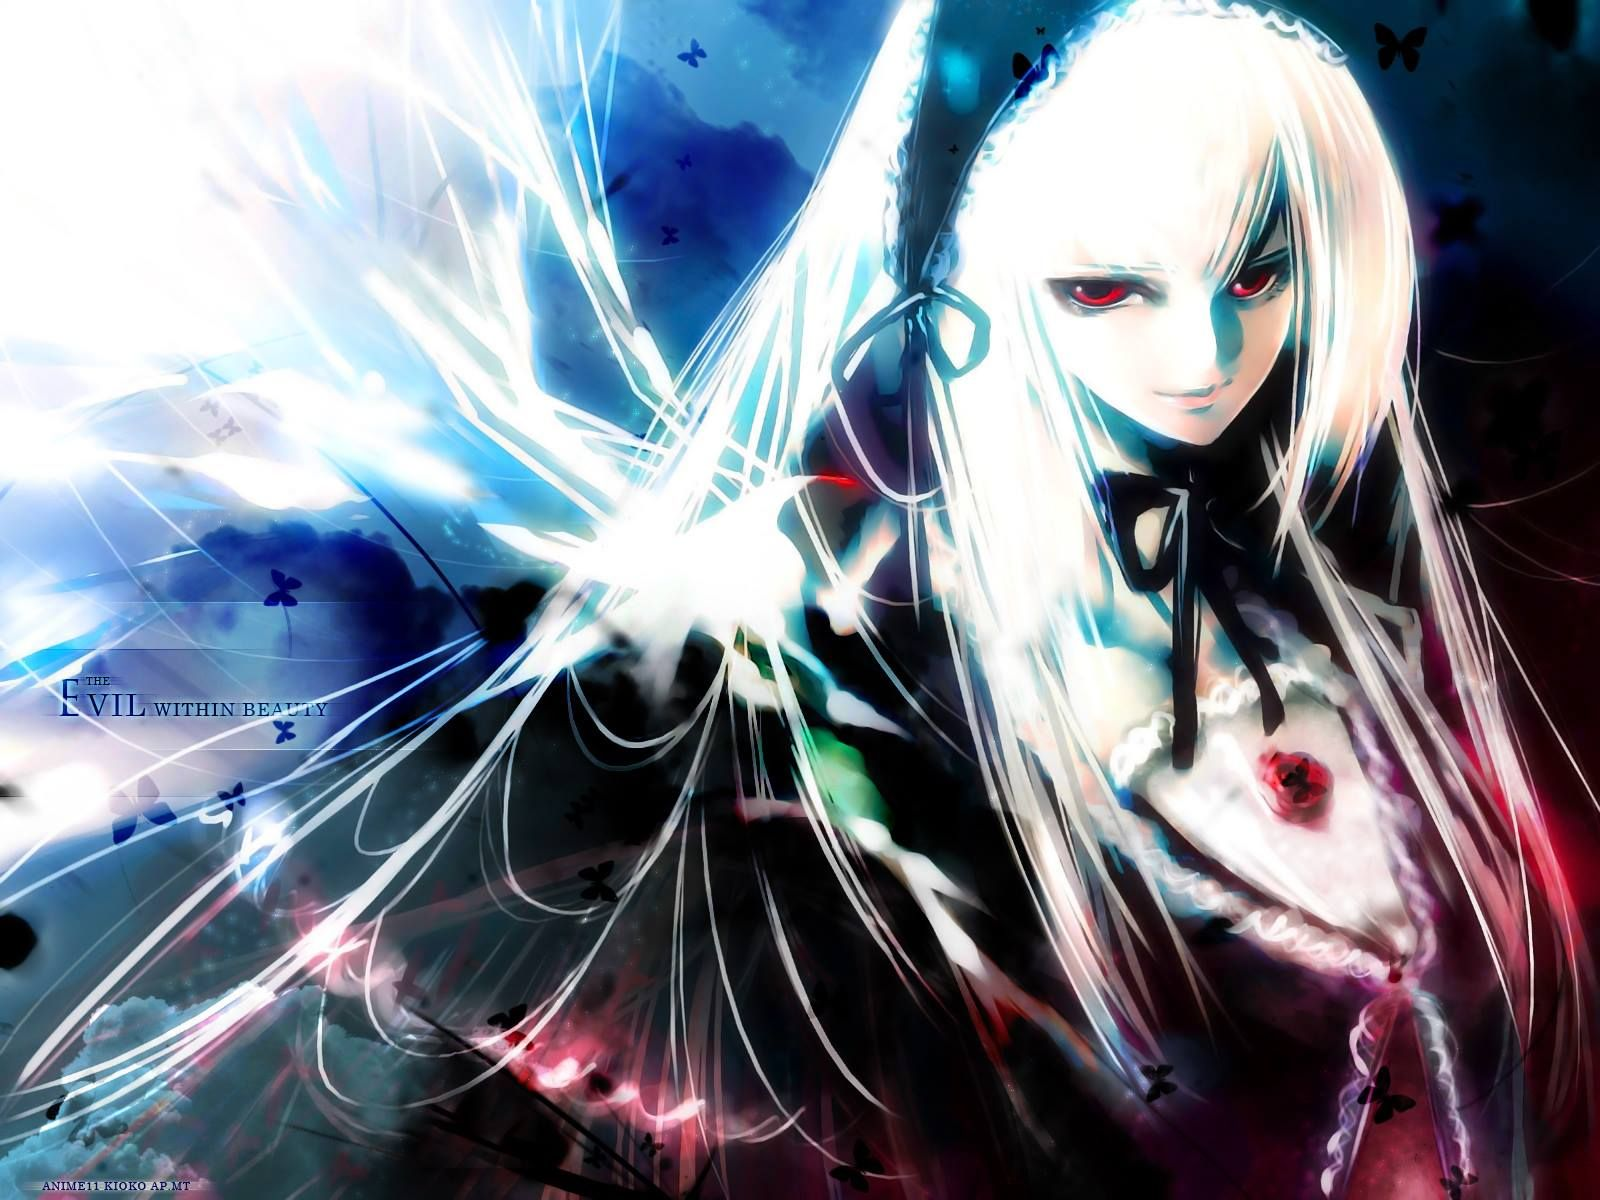 Anime Art Anime wallpaper, Cool anime pictures